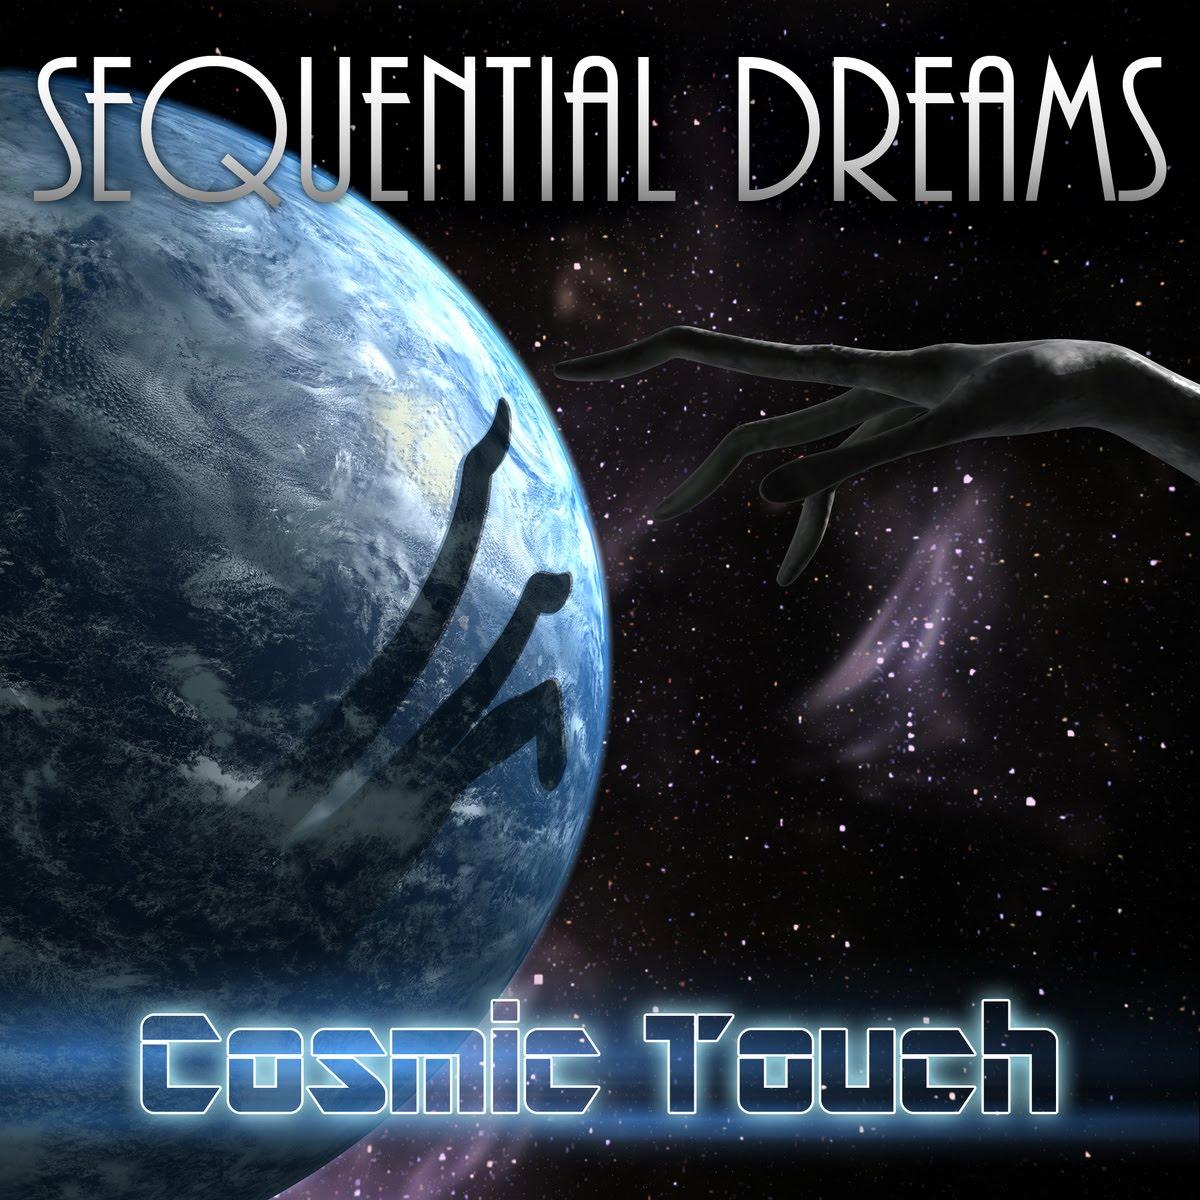 Sequential Dreams, Cosmic Touch, Review by Synth & Sequences